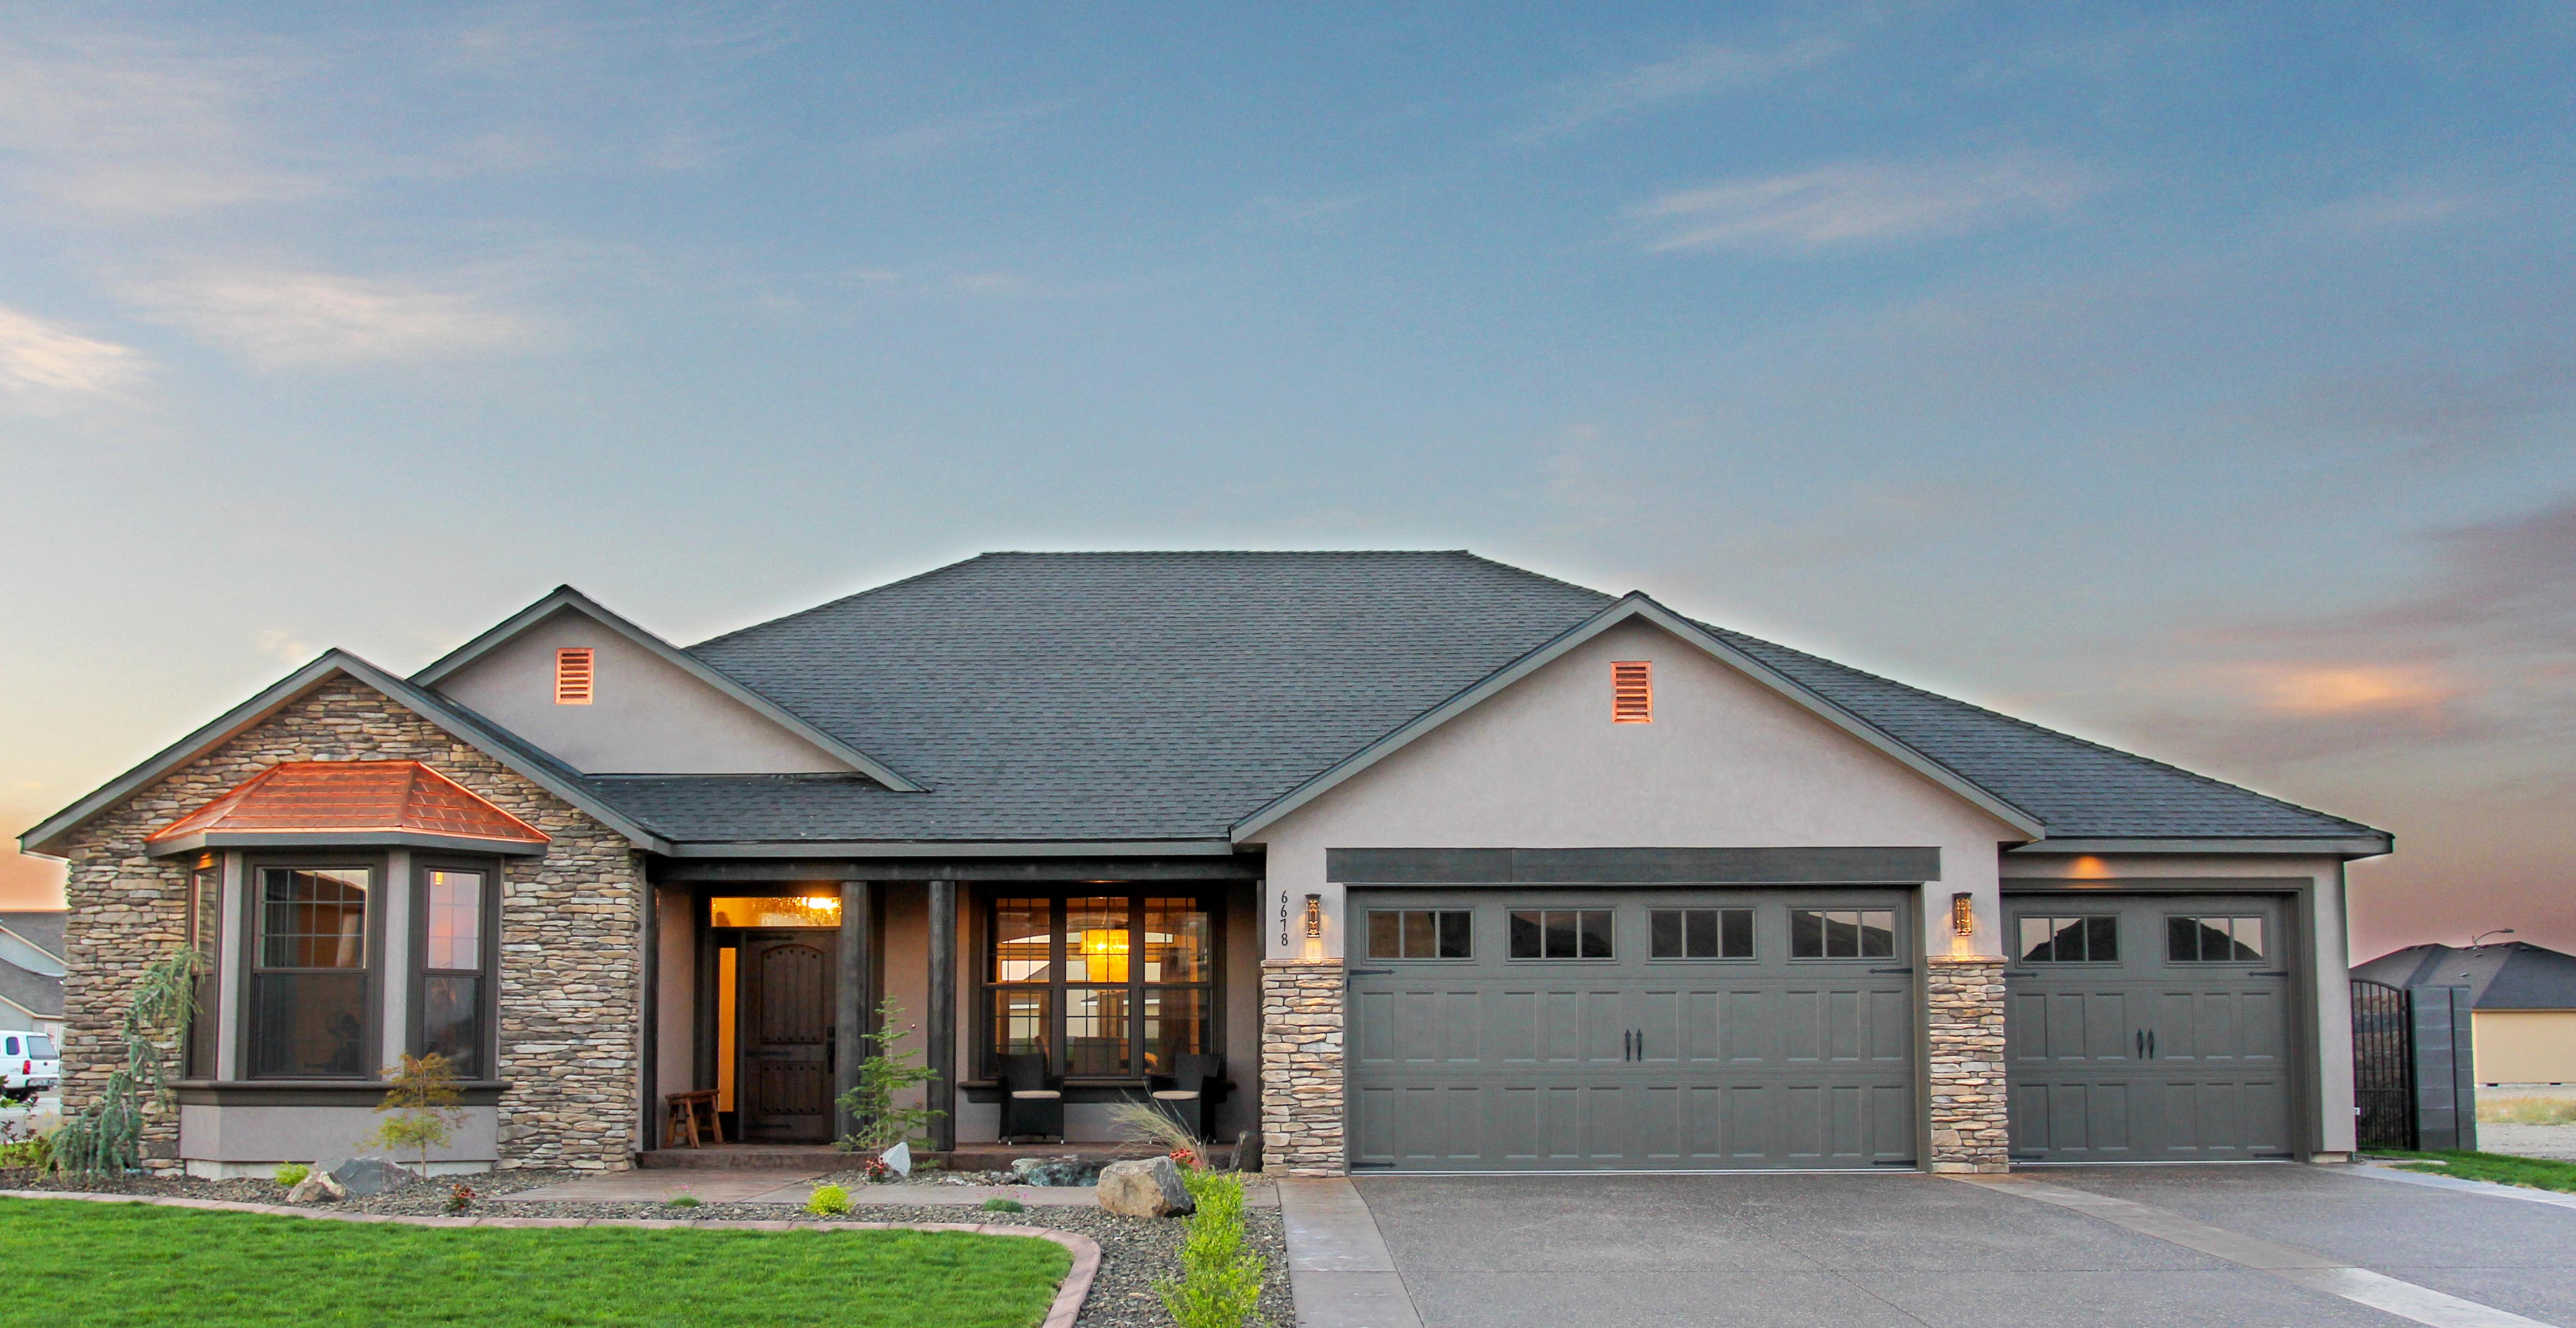 Garage Builders Tri Cities Wa Alderbrook Homes Where We Build